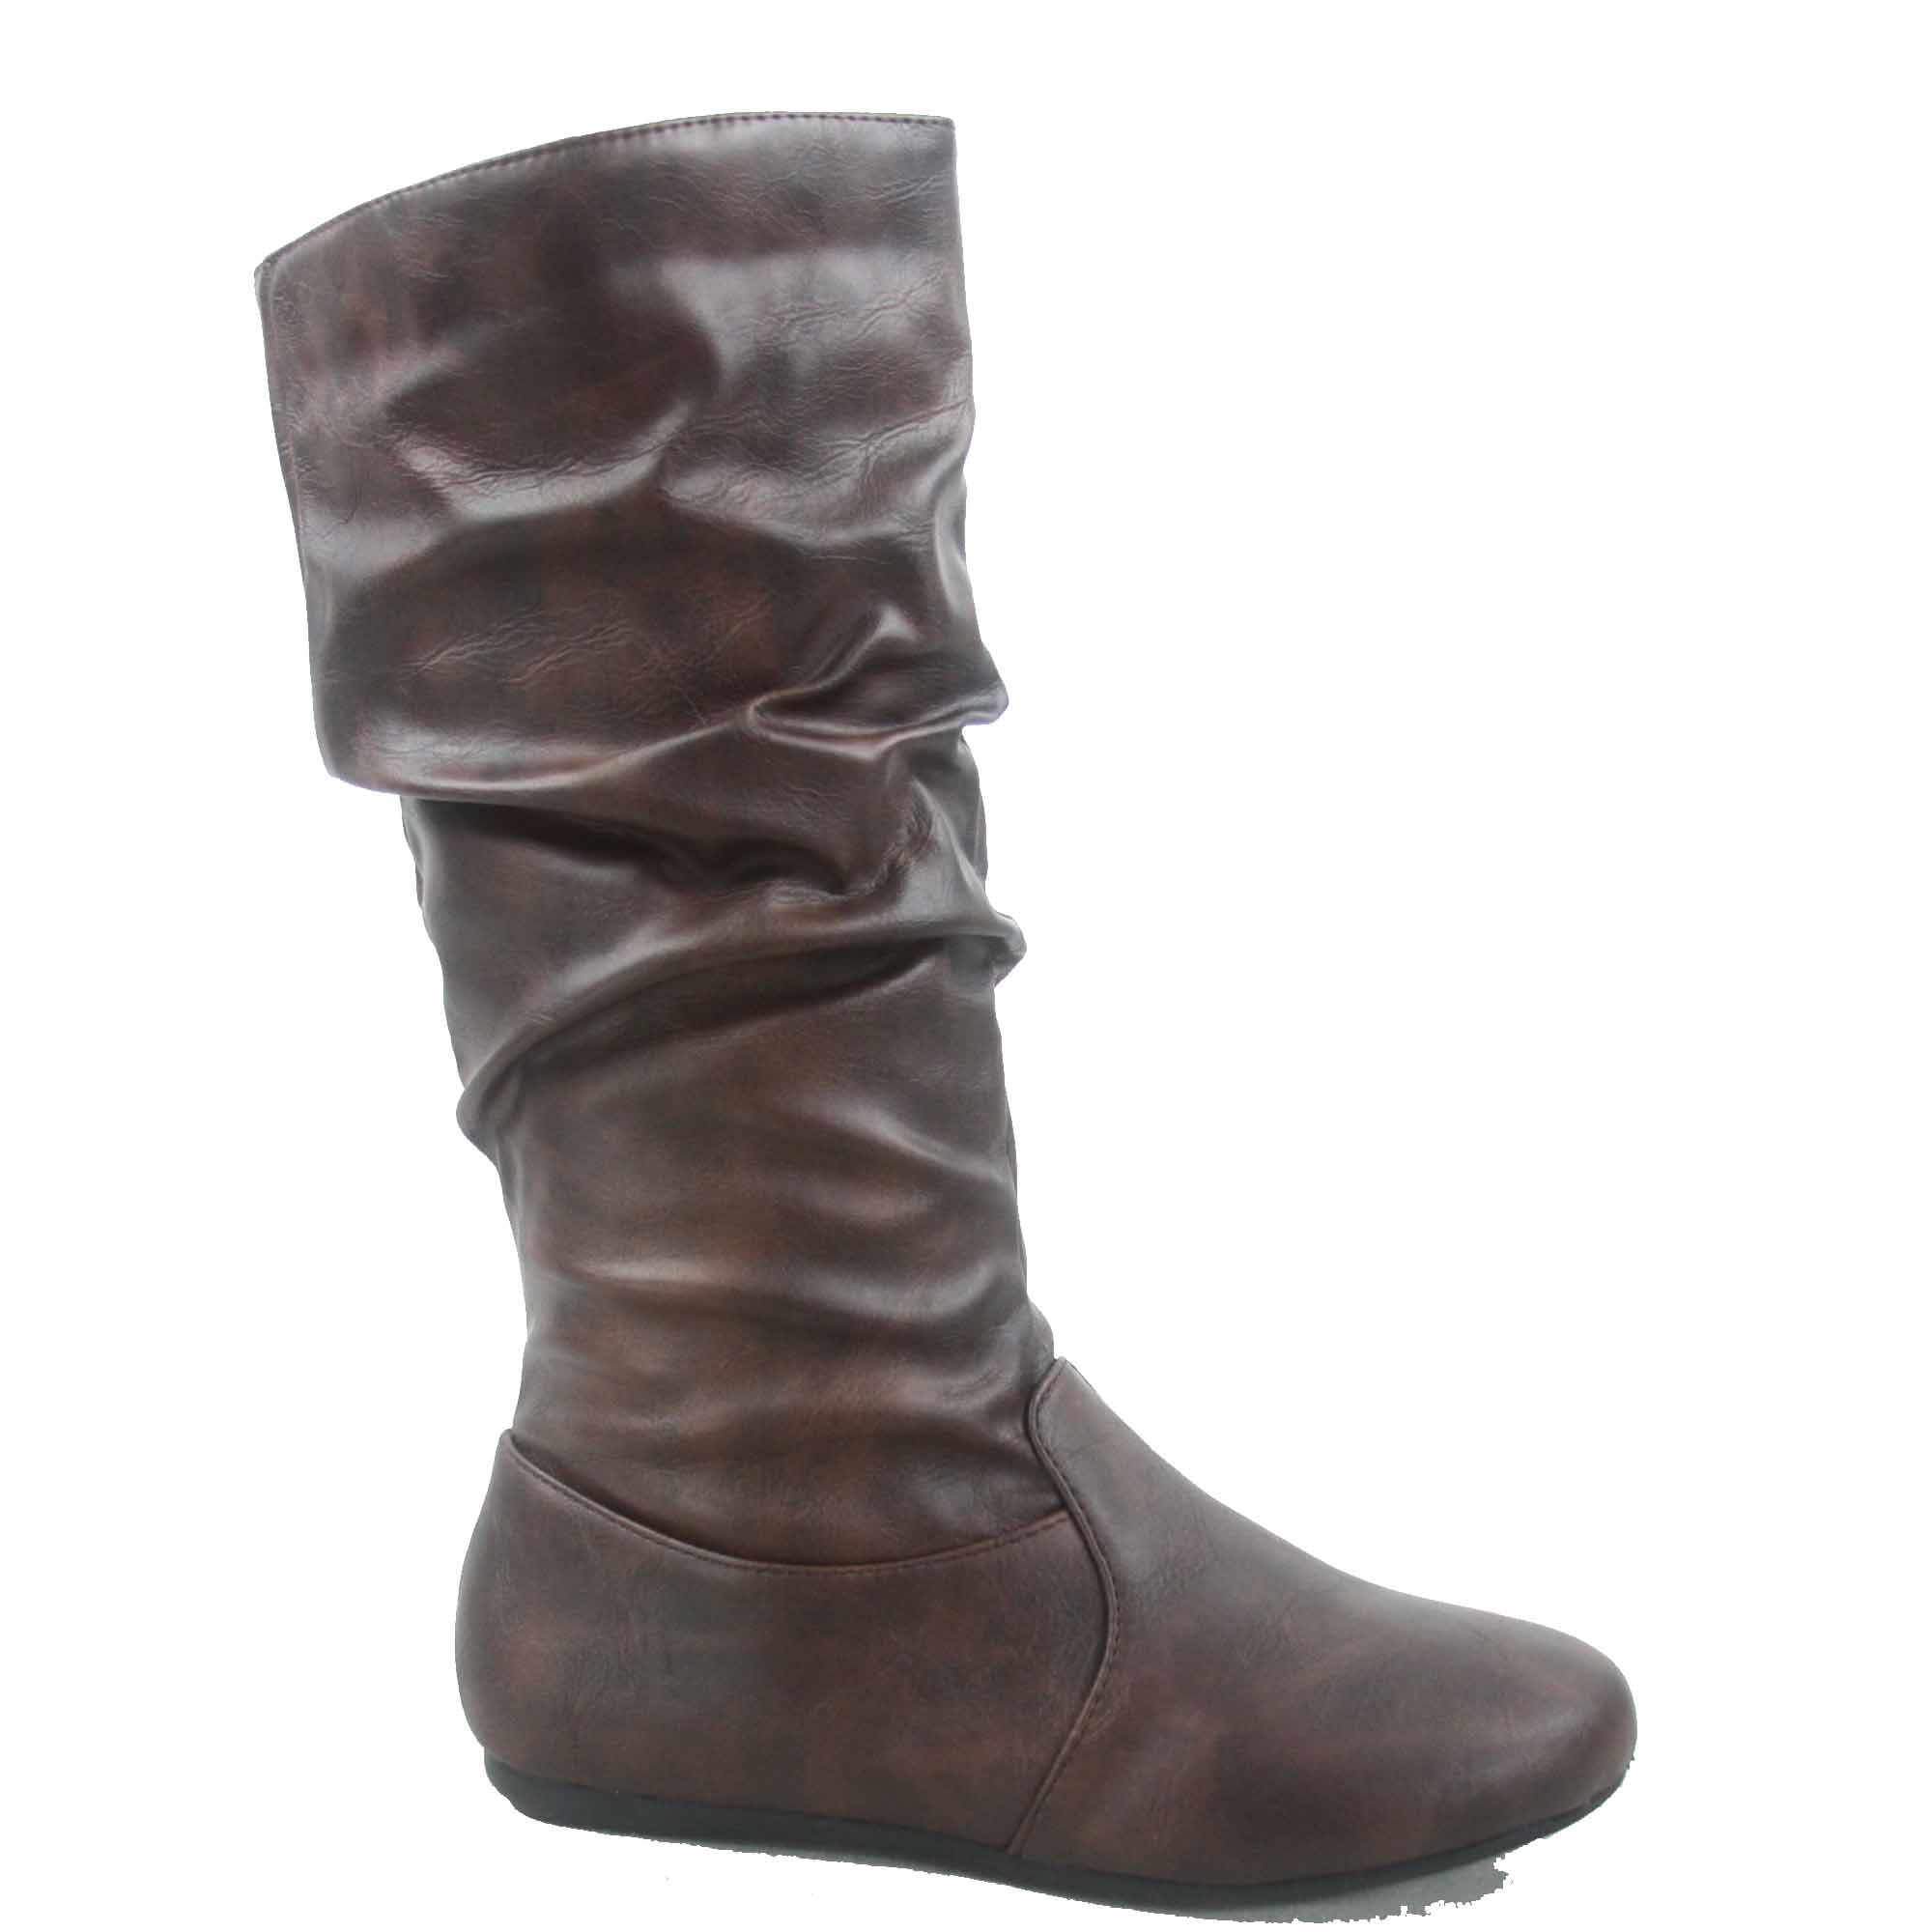 Selina-24 Women's Faux Leather Causal Zipper Slouch Flat Toe Heel Mid Calf Round Toe Flat Boots Shoes 69630a